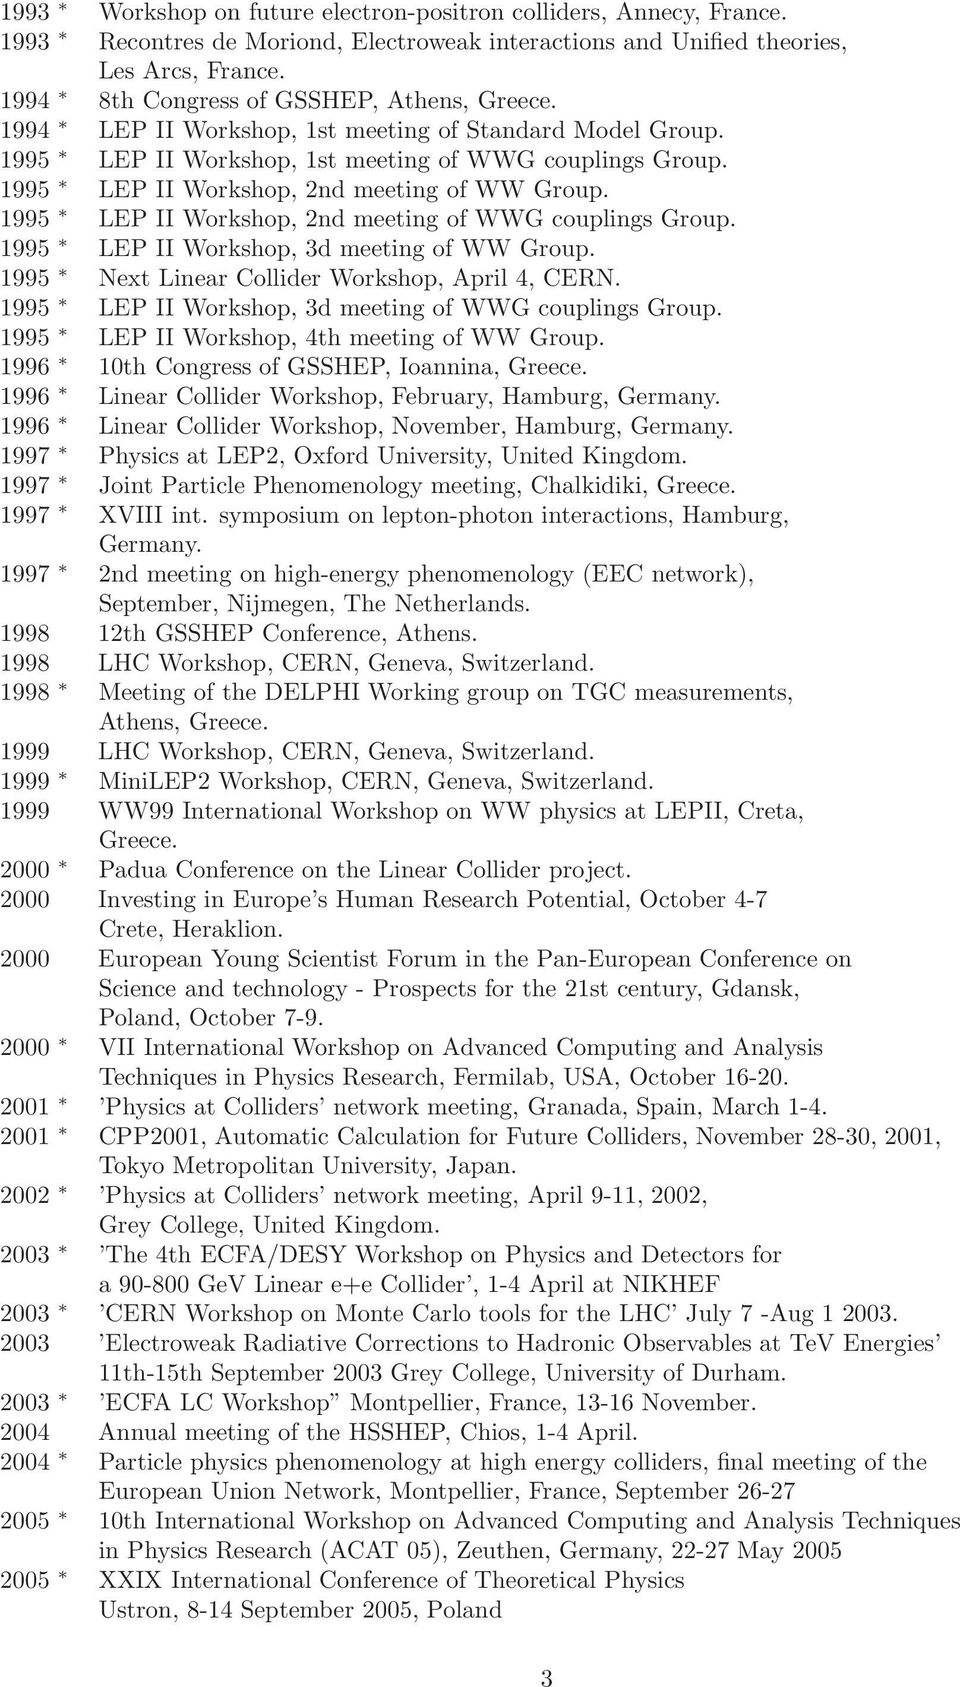 1995 LEP II Workshop, 2nd meeting of WW Group. 1995 LEP II Workshop, 2nd meeting of WWG couplings Group. 1995 LEP II Workshop, 3d meeting of WW Group.